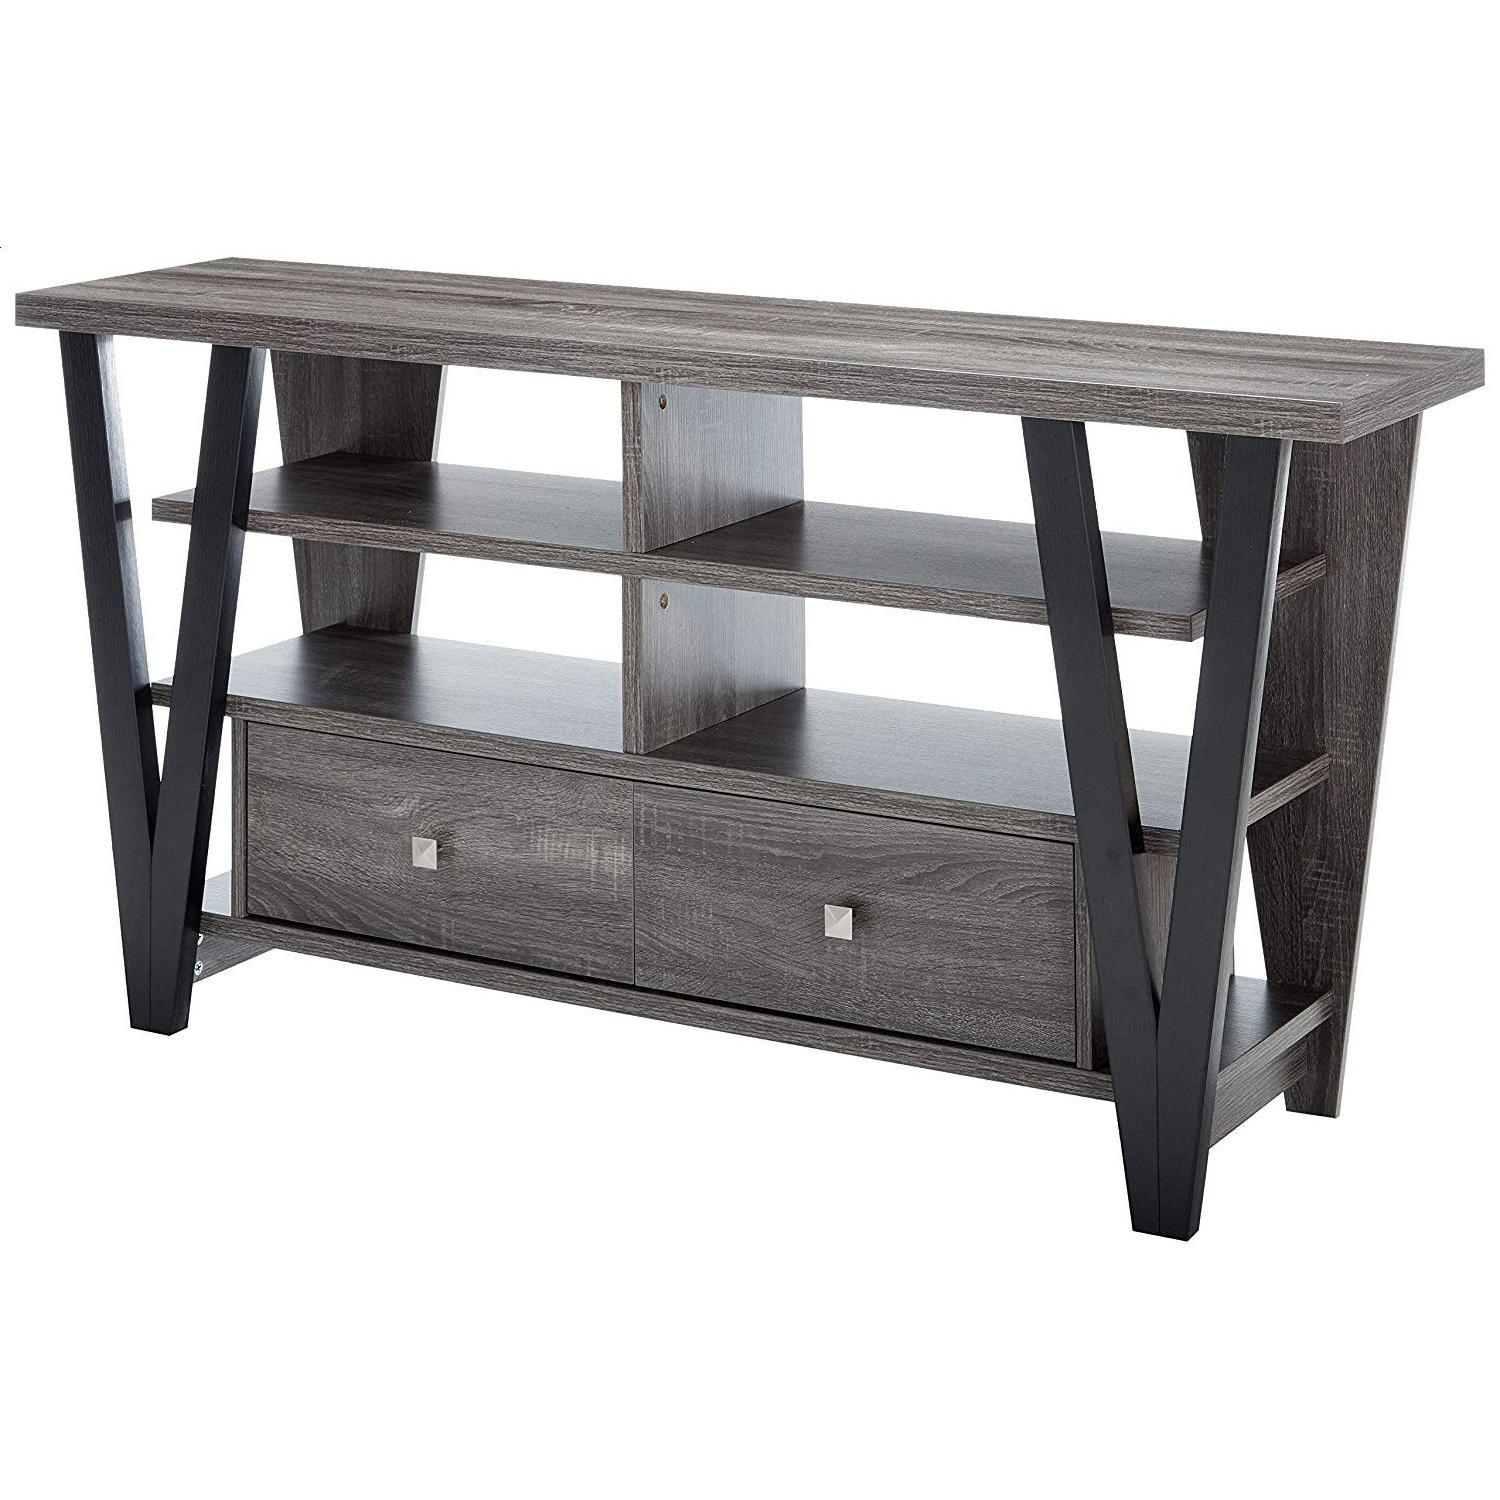 Glam Style TV Console w/ Mirror Accent - image-9